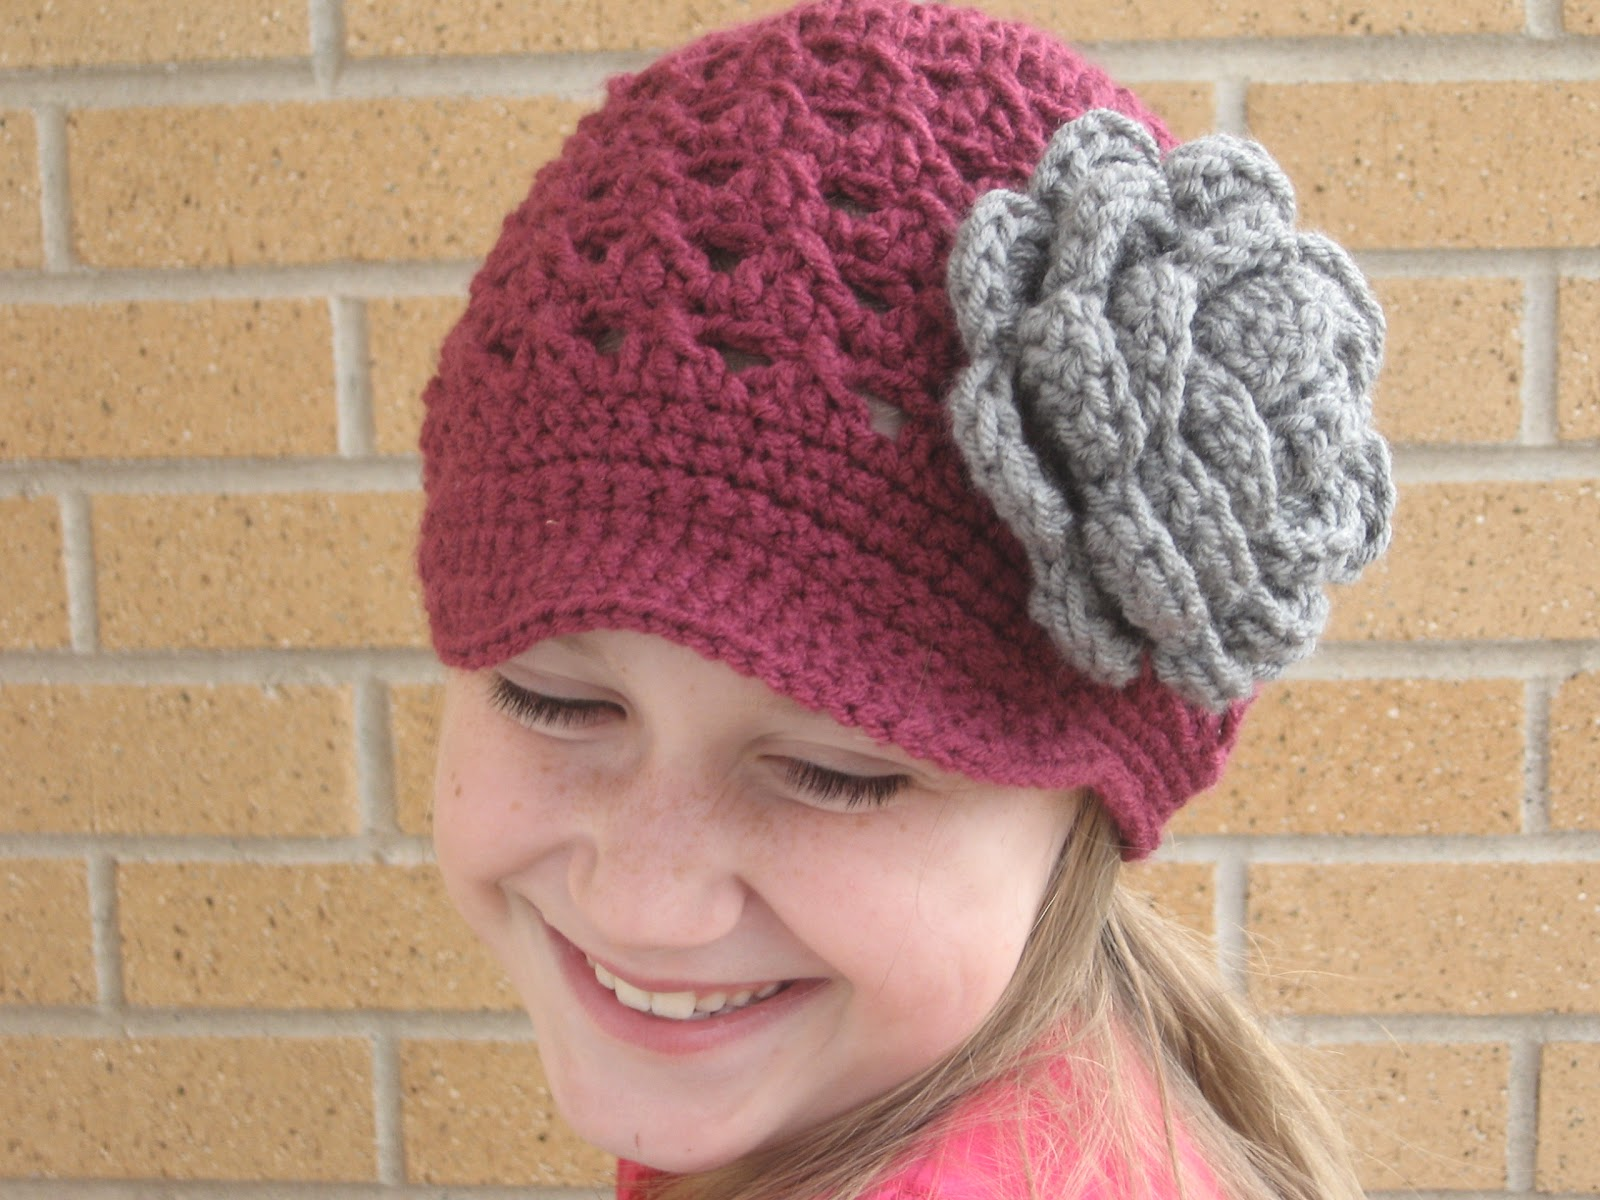 Free Crochet Pattern Toddler Newsboy Cap : Crochet Newsboy Hat Pattern Free Baby